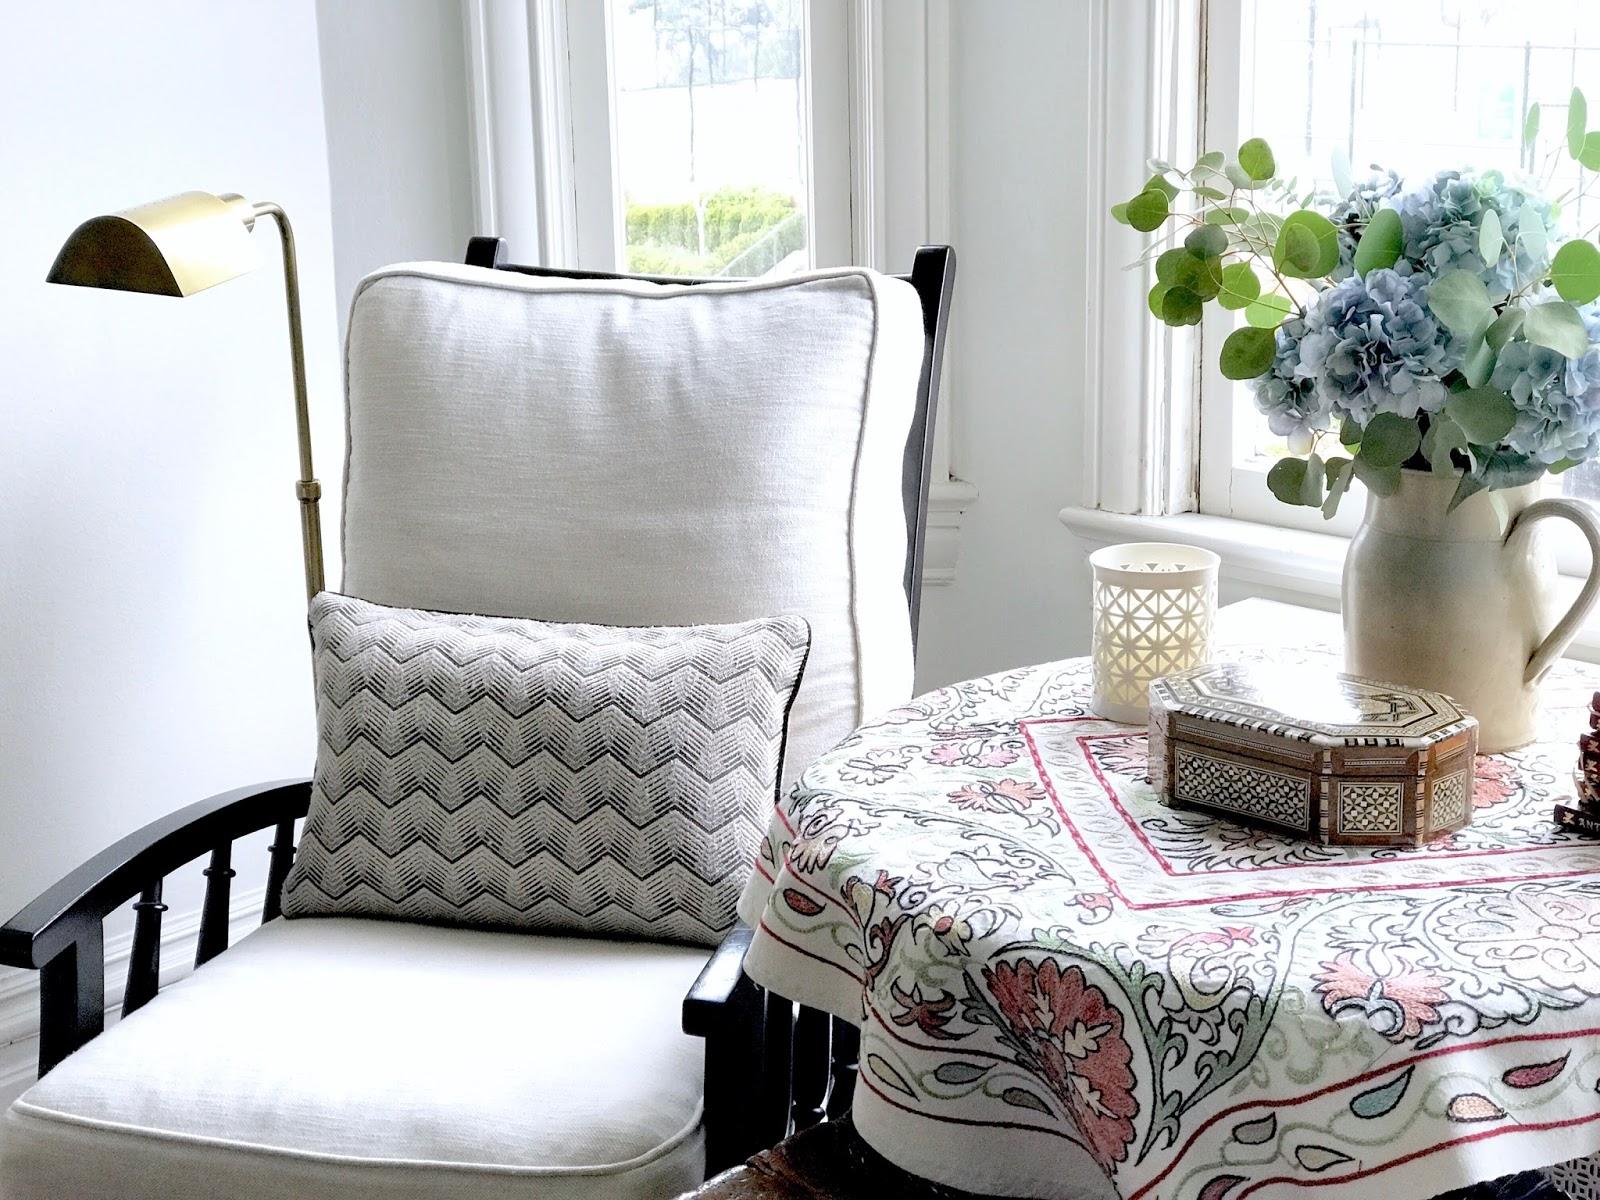 Read This Before You Buy Another Throw Pillow